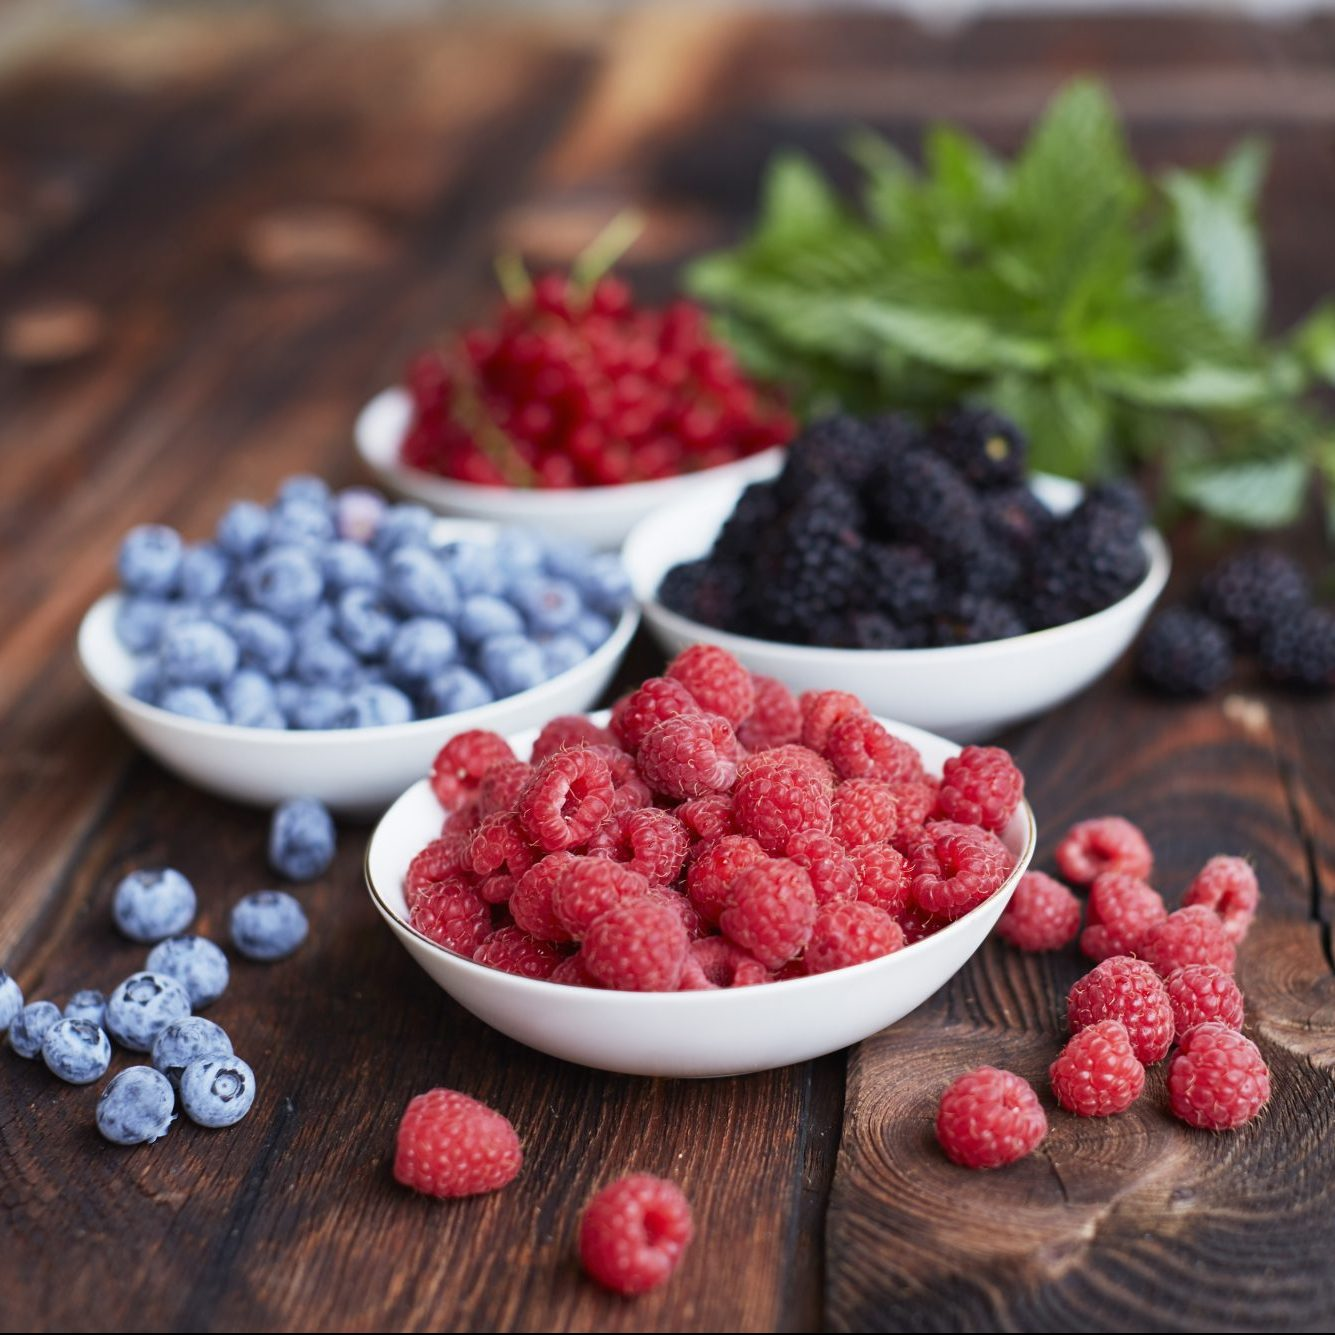 Your legs can take a pounding from high-impact activities like running; soreness you feel after a hard run may be caused by micro-tears in the exercised muscles. That's why, in addition to their high fiber content, berries are a good option for runners: the vitamin C and potassium they contain help the body repair itself.